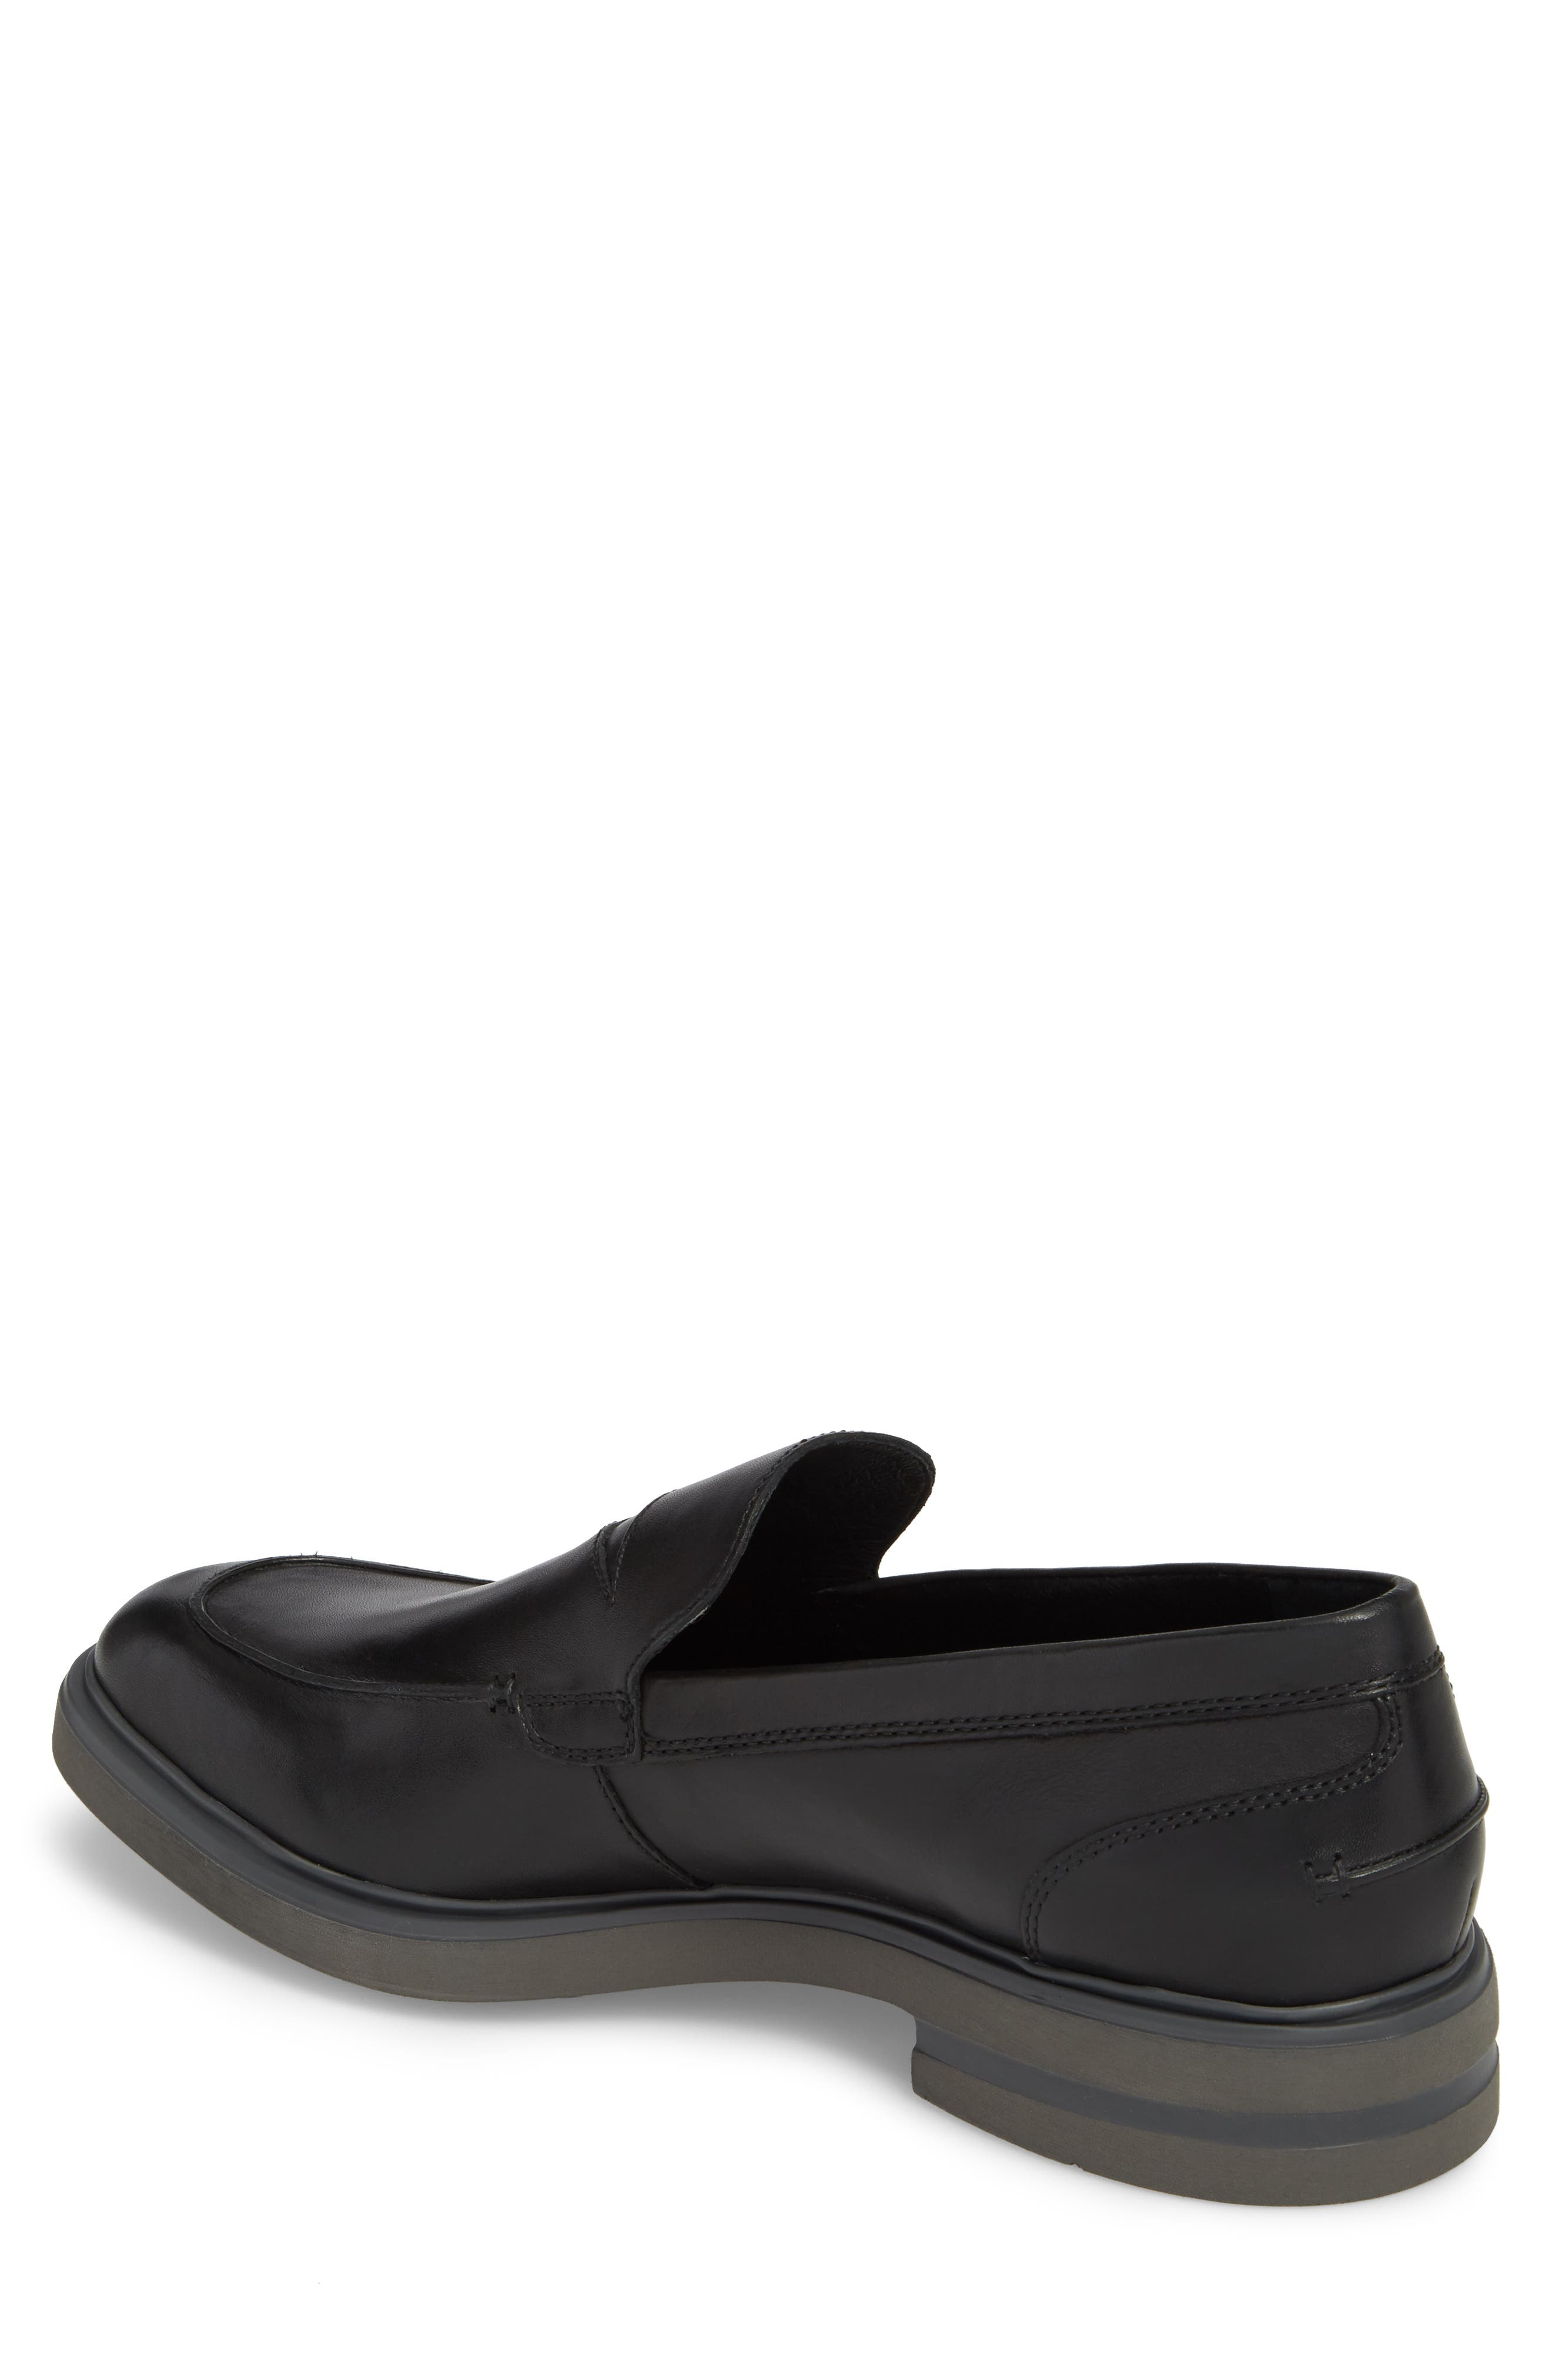 Edwyn Deconstructed Penny Loafer,                             Alternate thumbnail 2, color,                             Black Leather